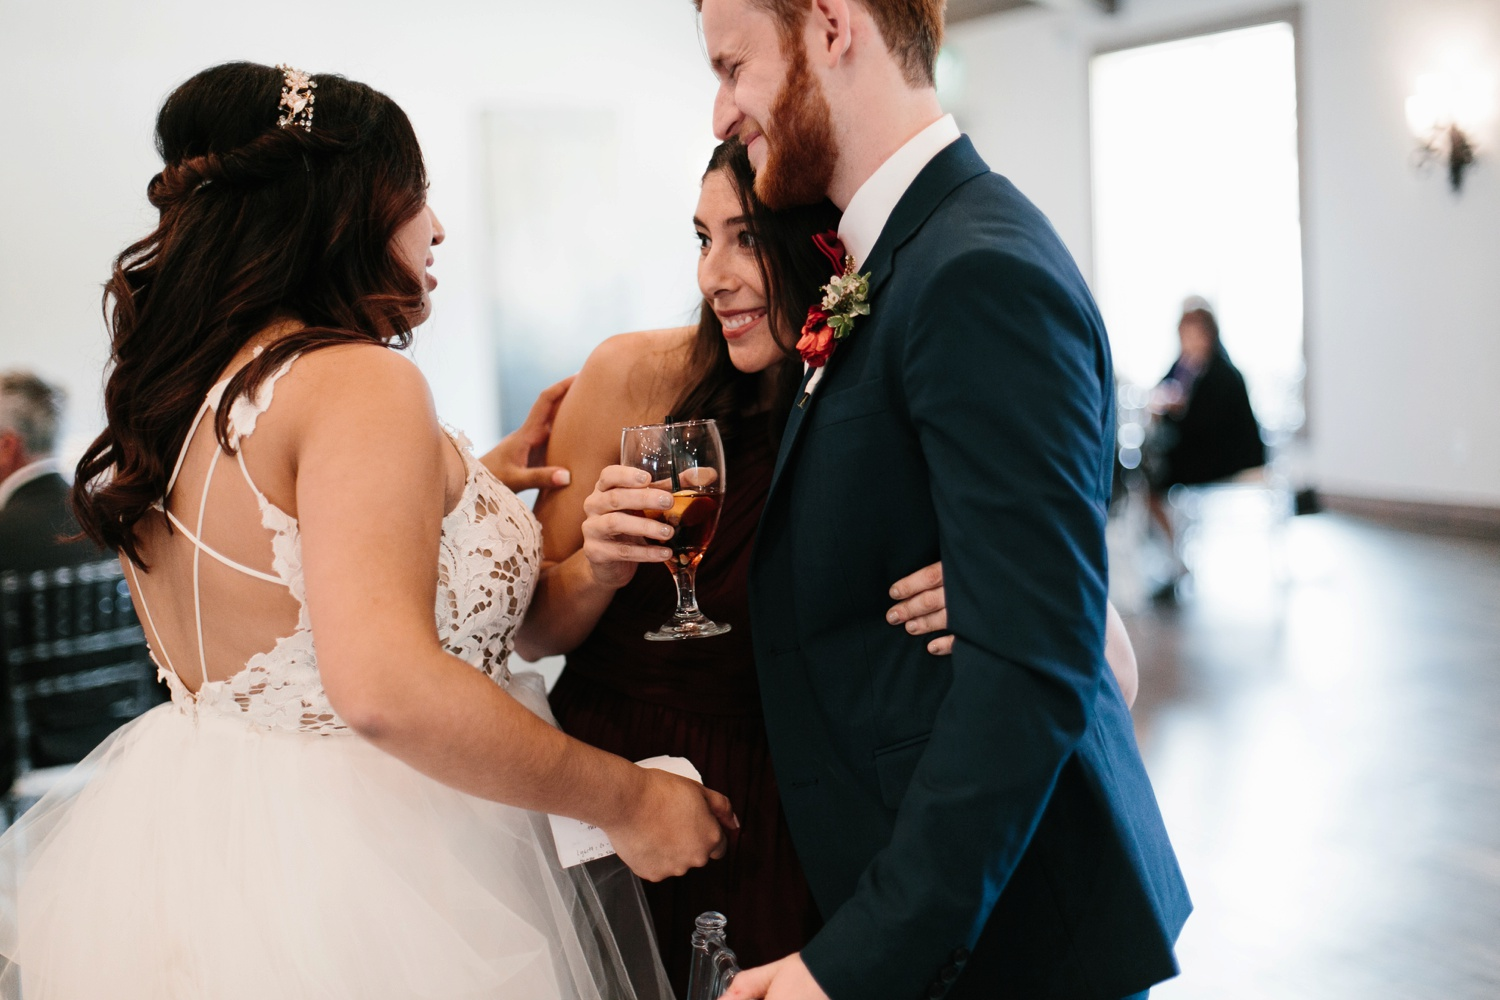 Grant + Lysette | a vibrant, deep burgundy and navy, and mixed metals wedding at Hidden Pines Chapel by North Texas Wedding Photographer Rachel Meagan Photography 156